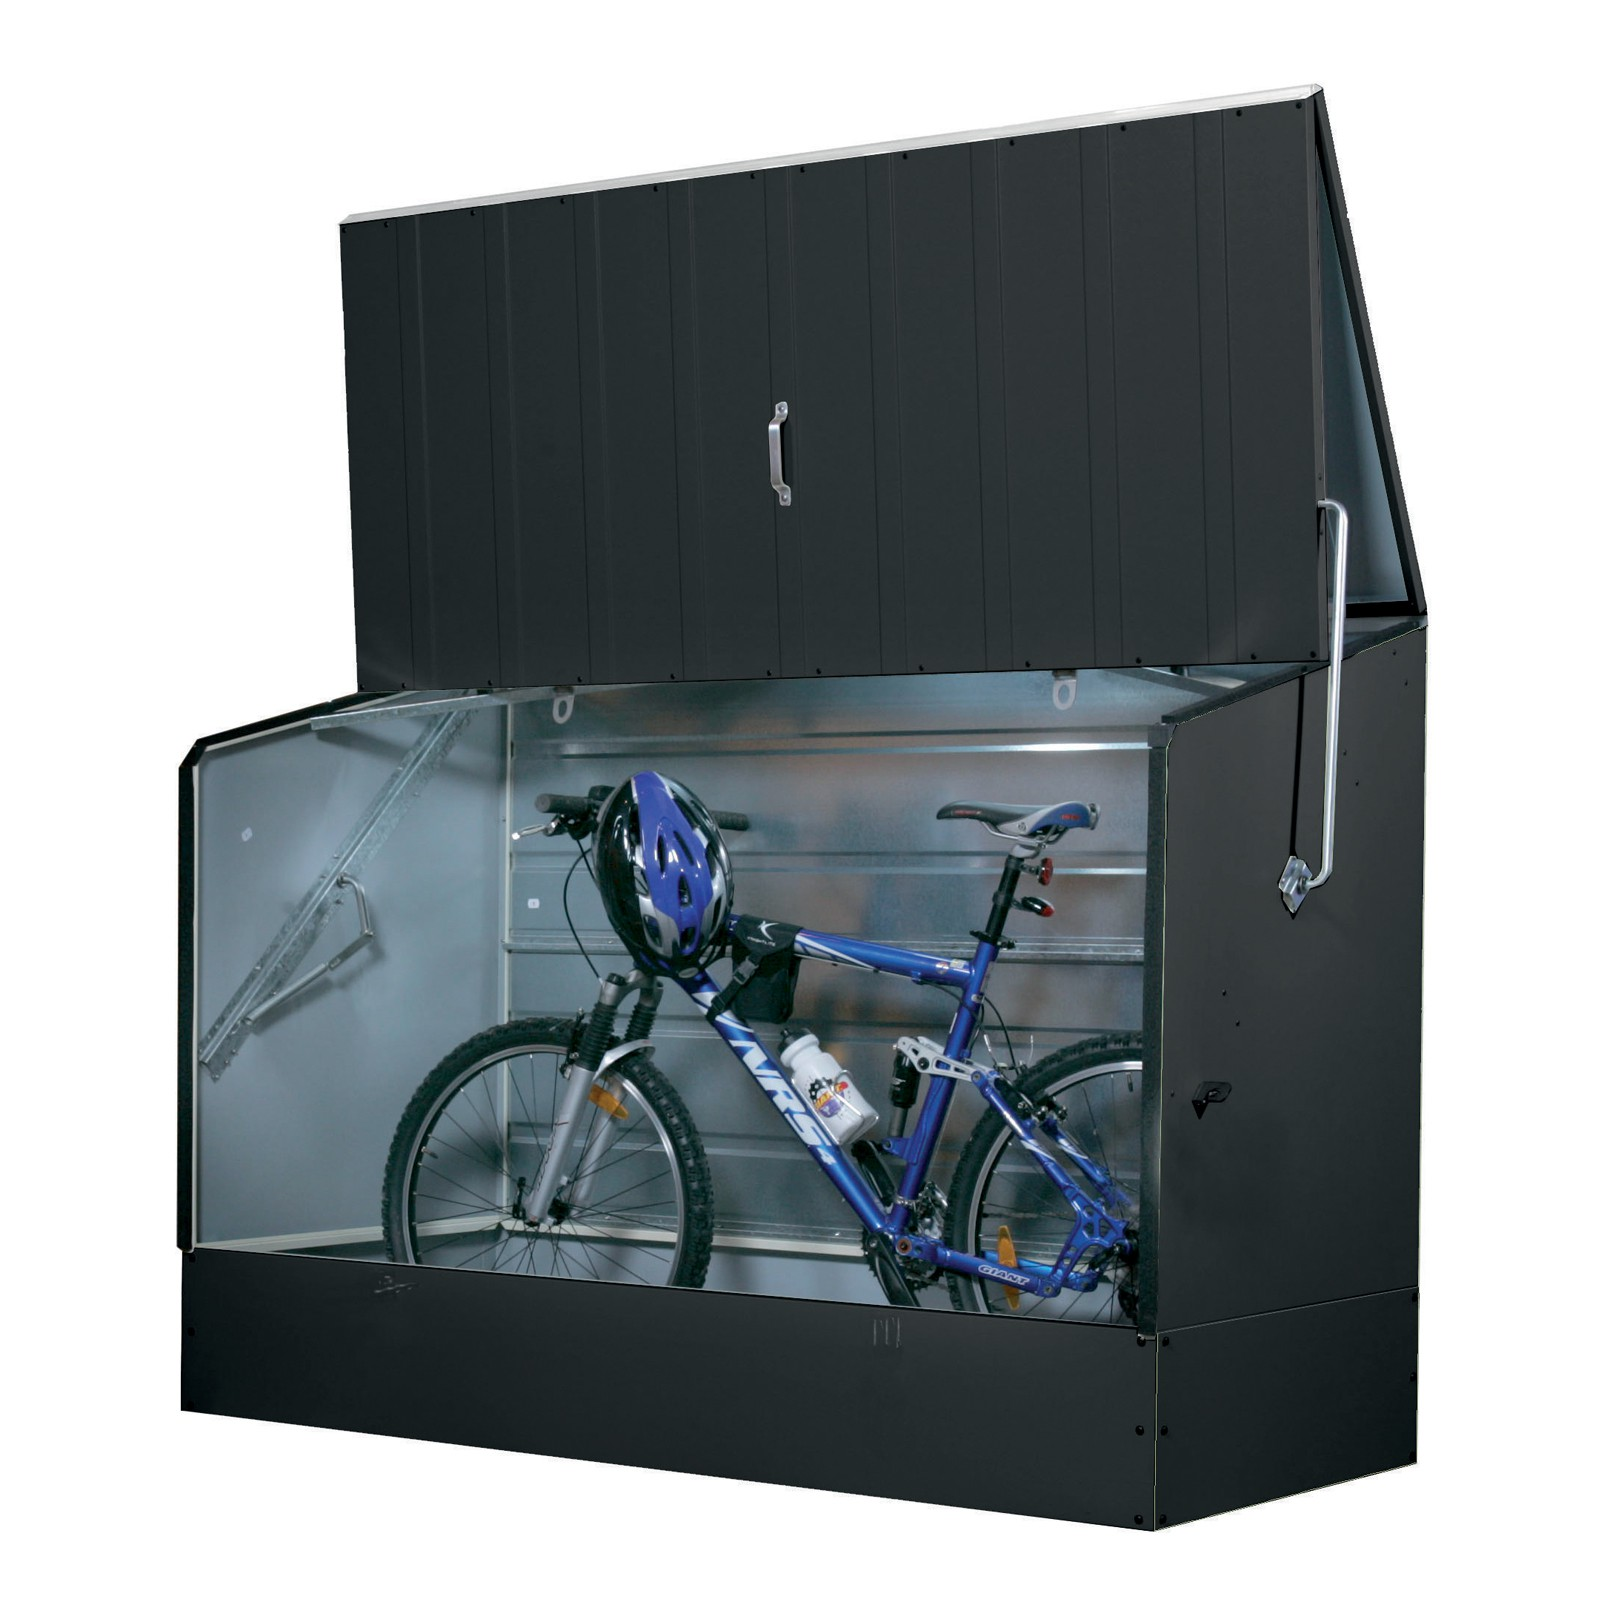 tepro metall fahrradbox fahrradgarage anthrazit. Black Bedroom Furniture Sets. Home Design Ideas